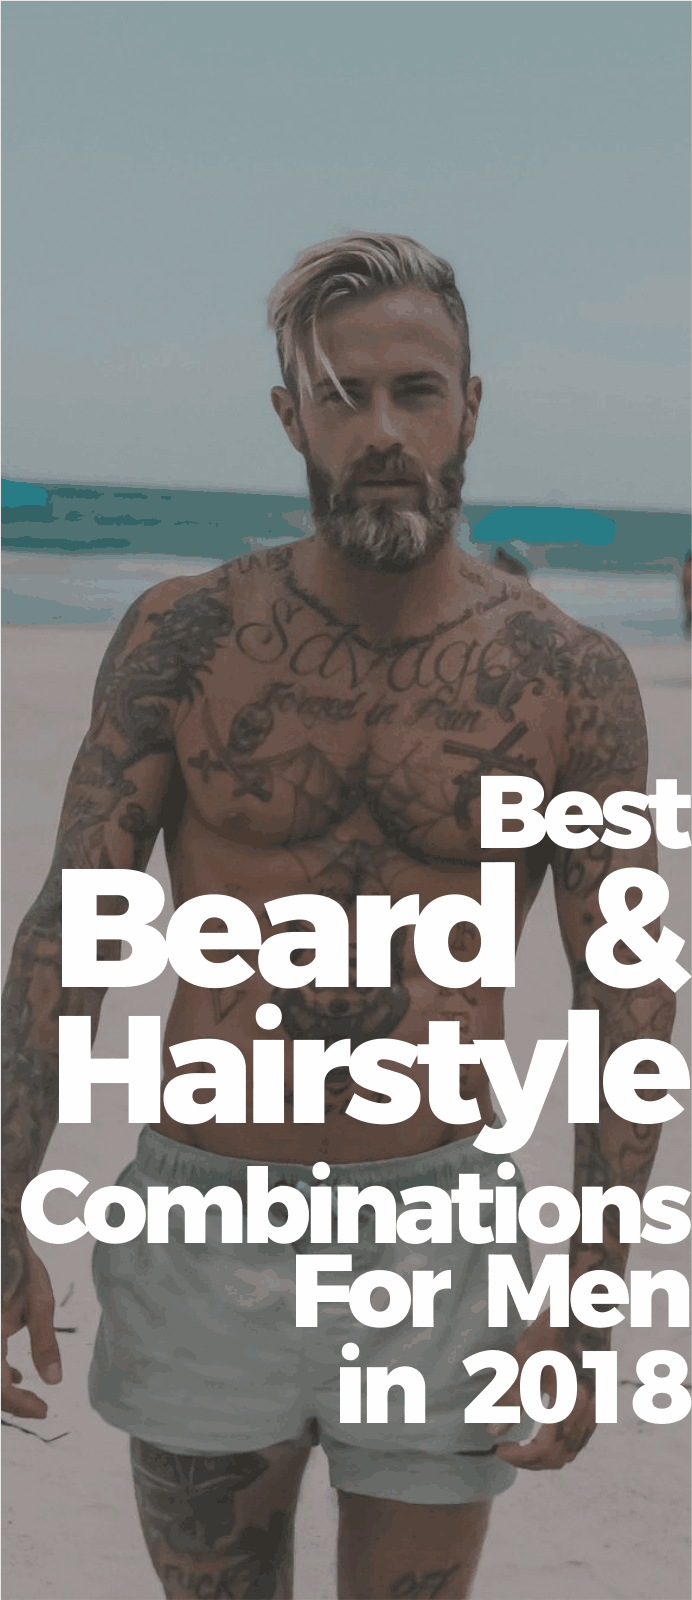 Best Beard & Hairstyle Combinations